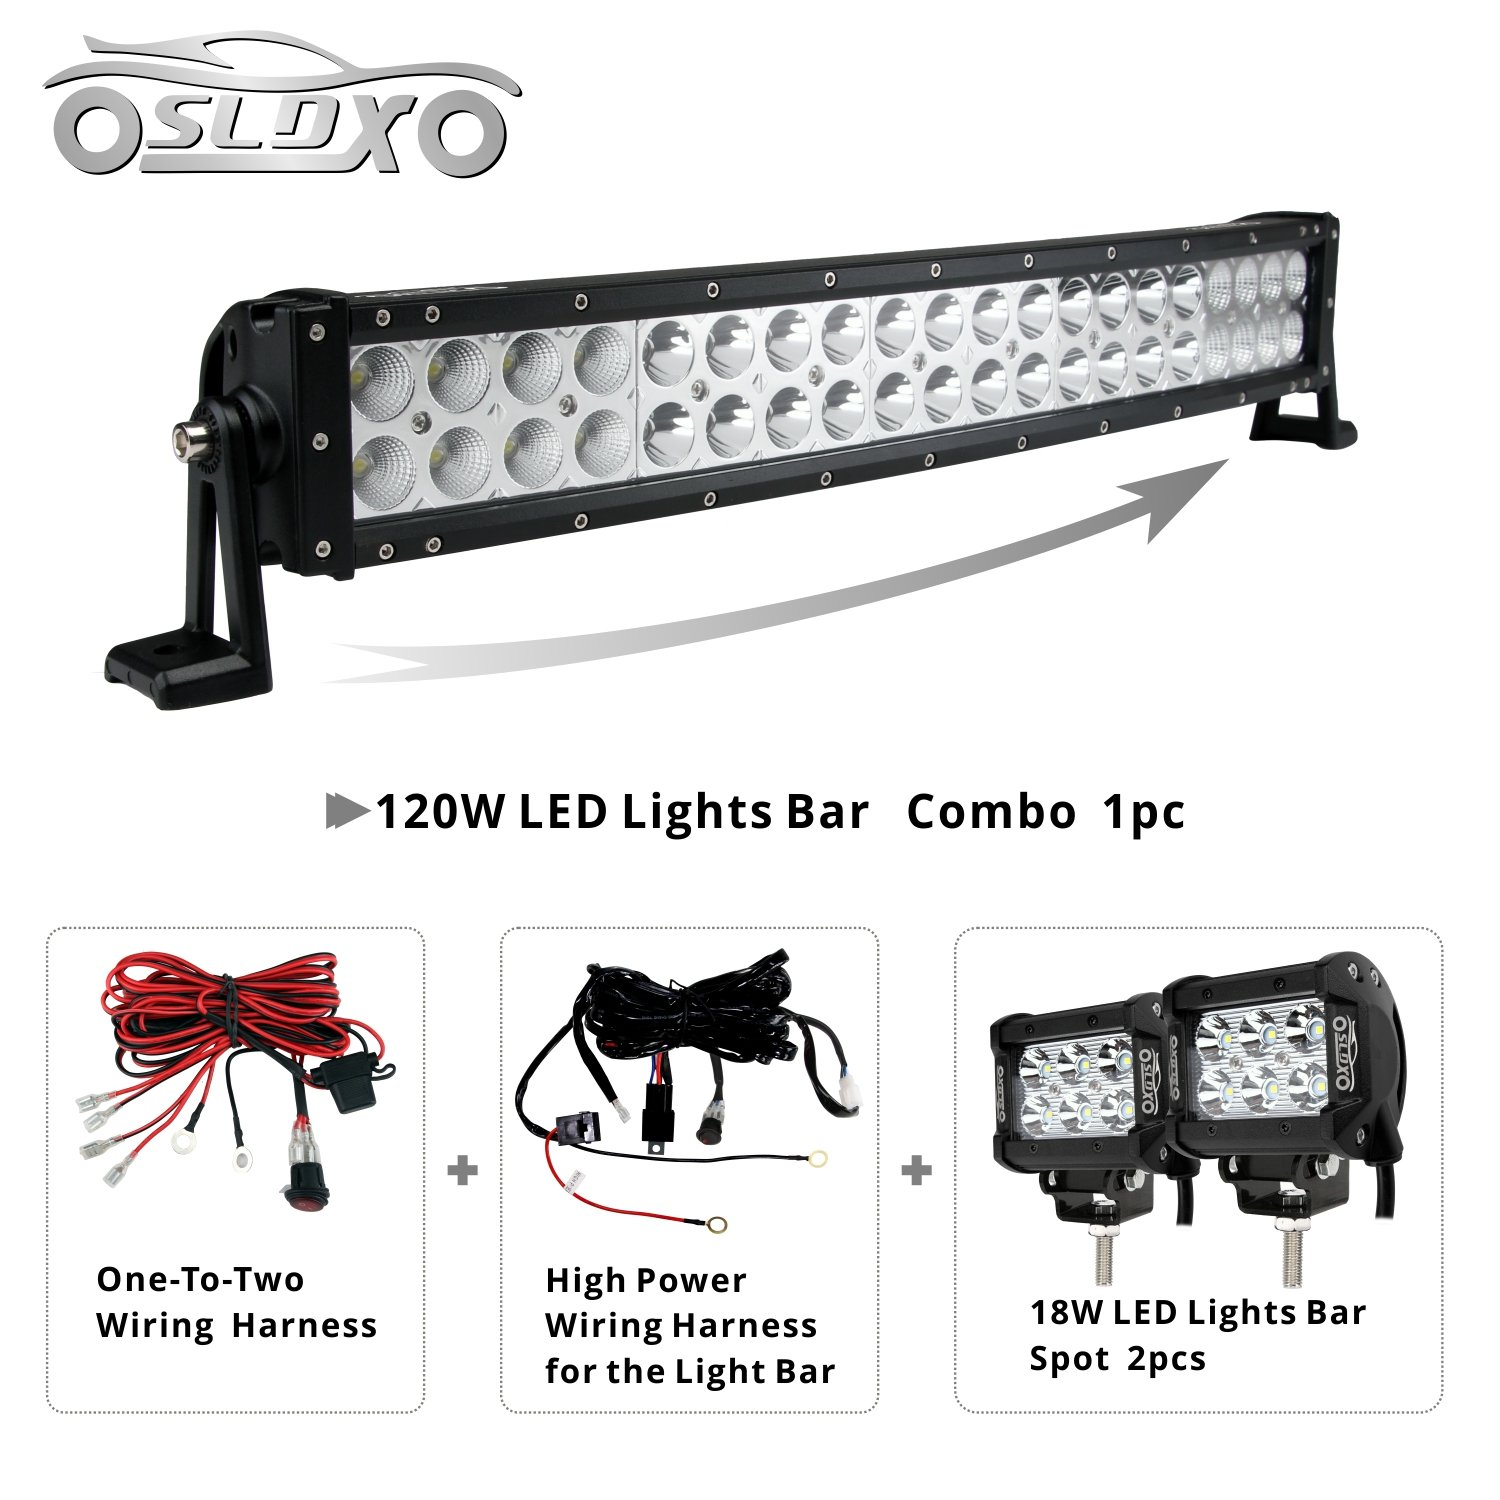 Sldx 120w 22inch Off Road Curved Combo Led Light Bar Wiring Two Bulbs In Series 2pcs 18w Spot Free Harness Automotive